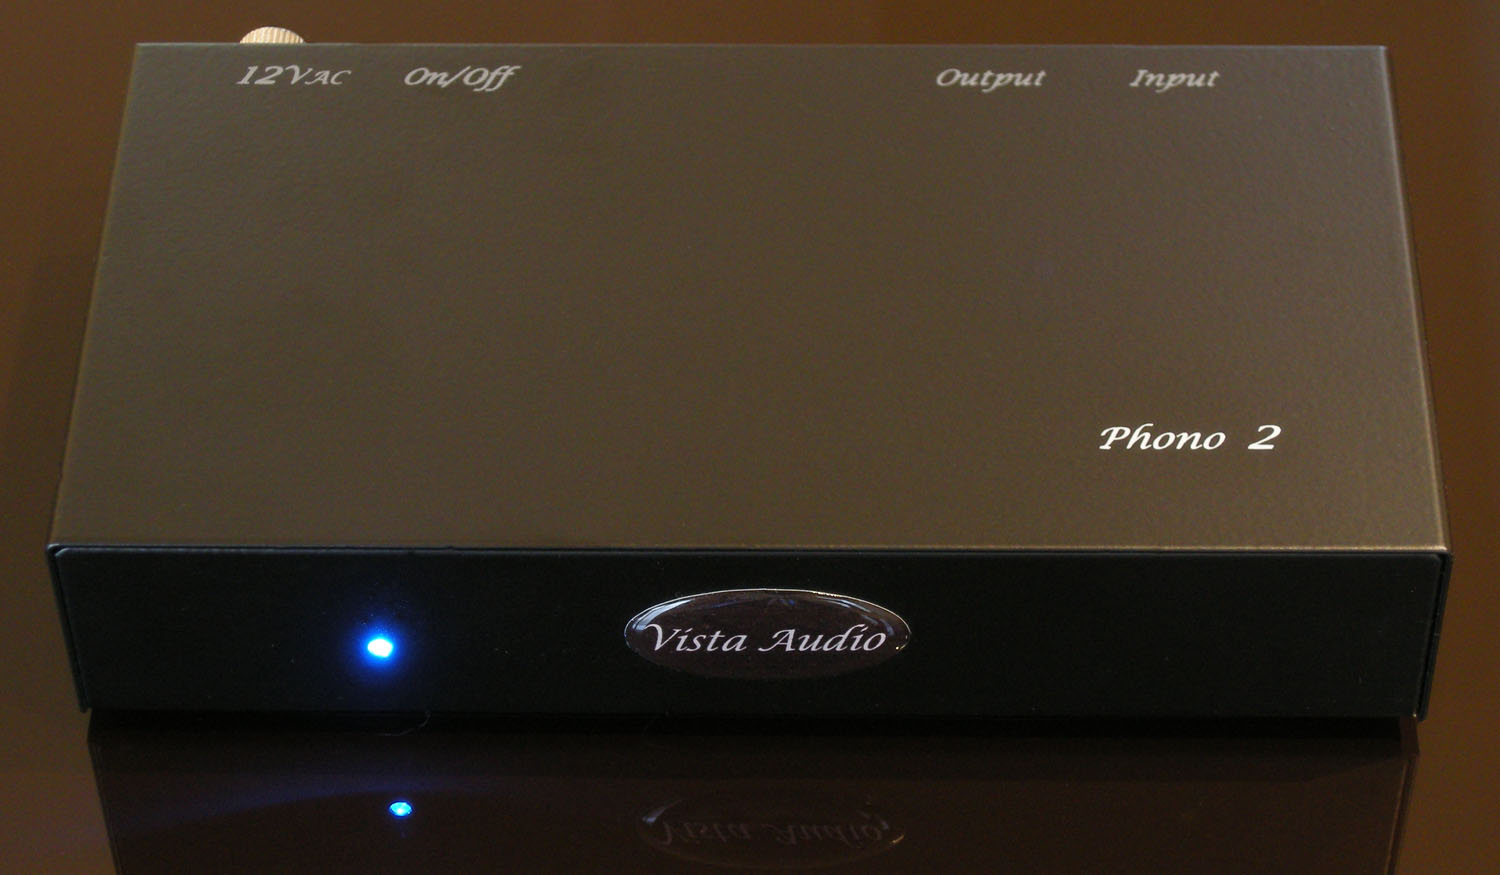 phono pre ampli Vista Audio Phono-2